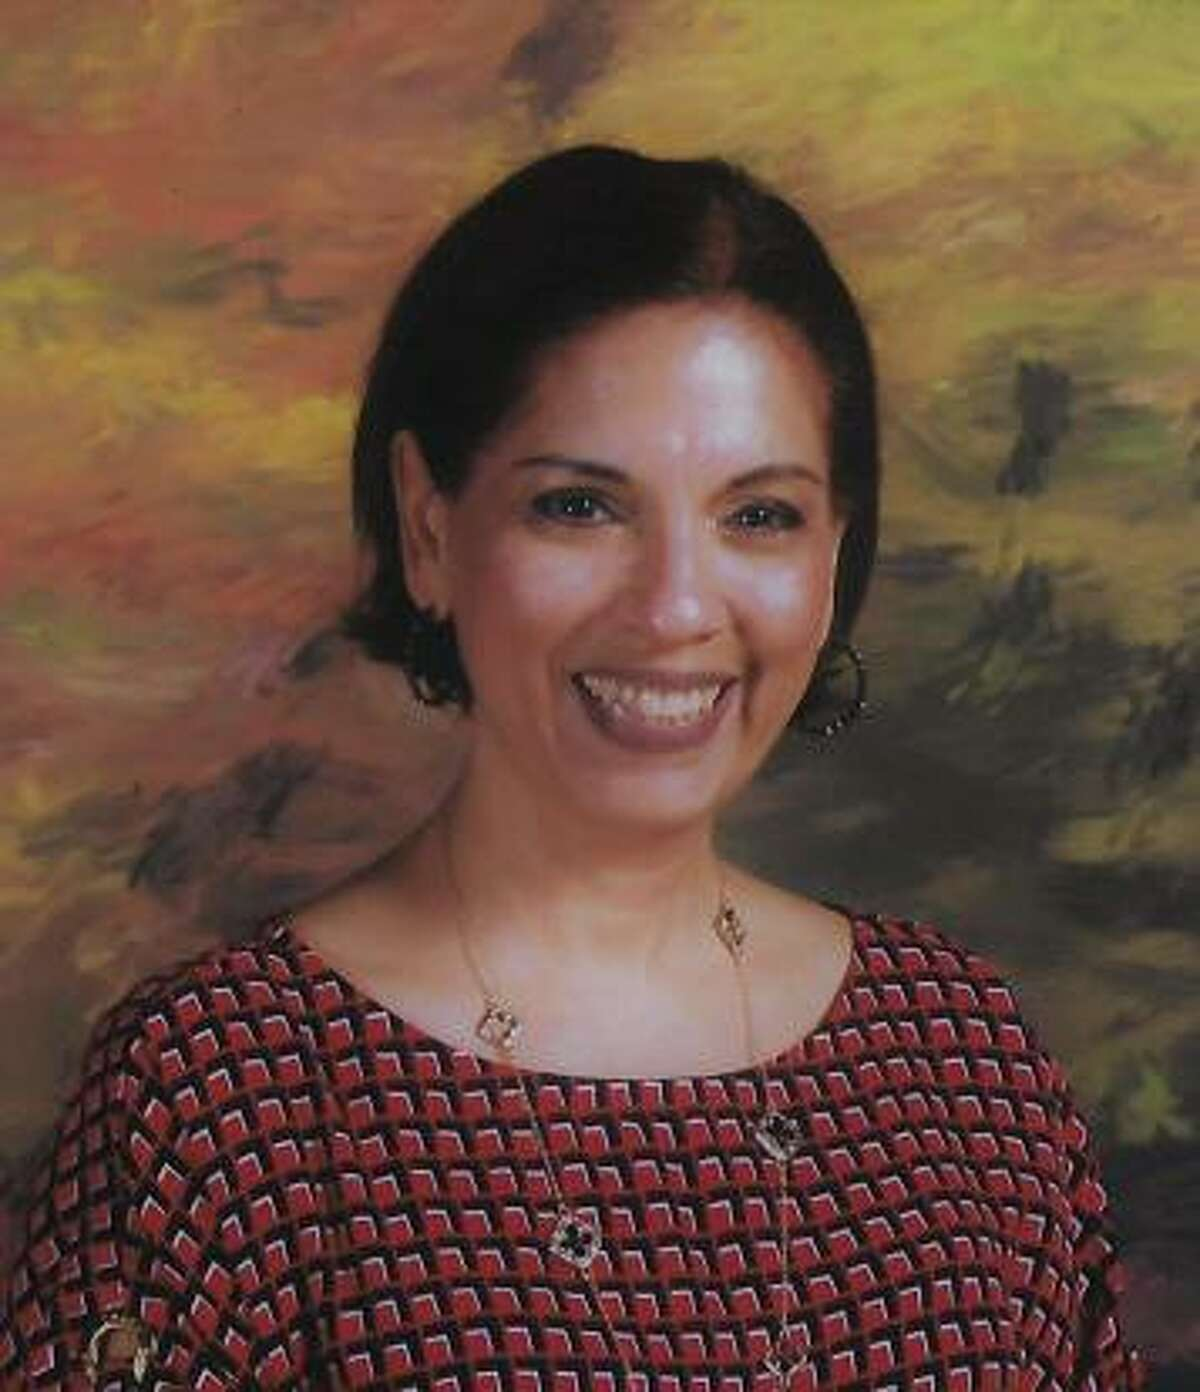 Erika R. Ramirez was selected to serve as the Principal at Honore Ligarde Elementary School.